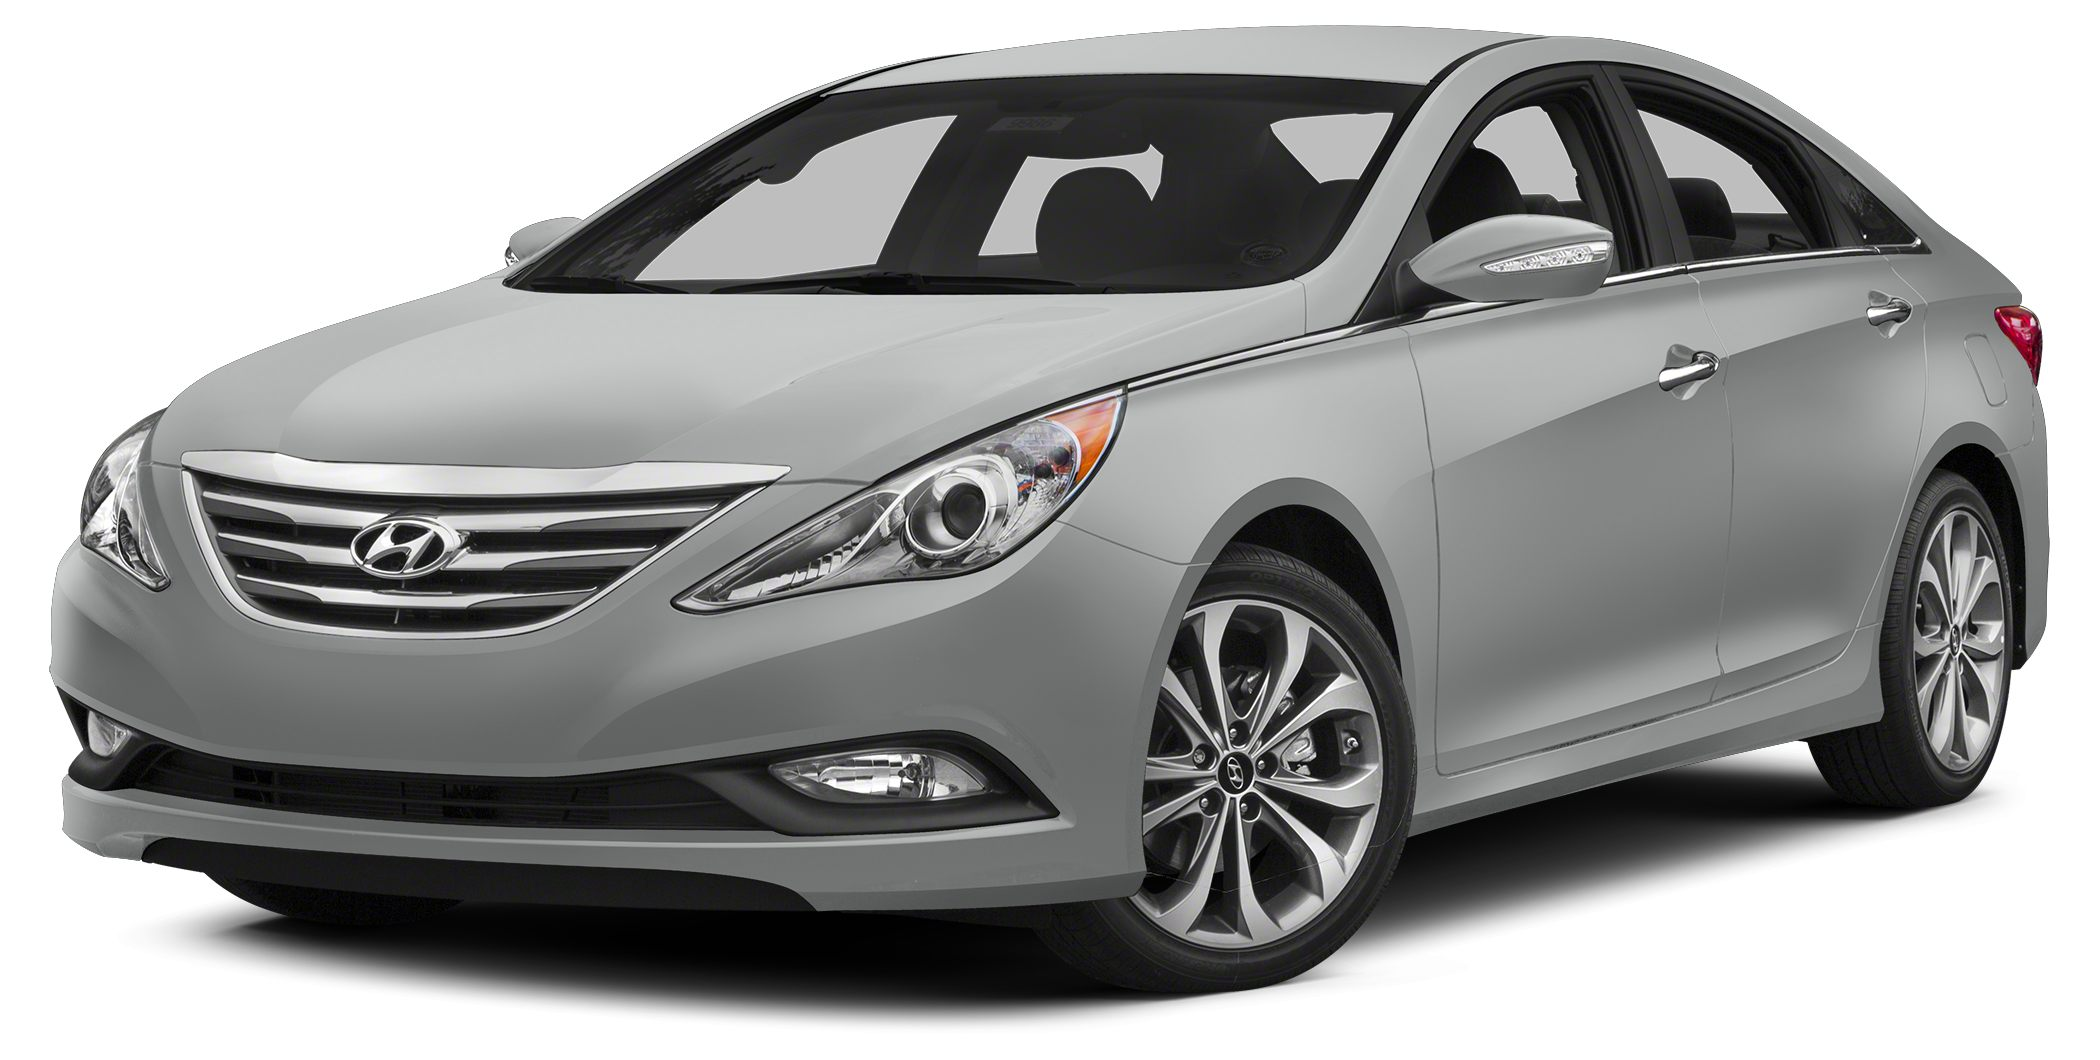 2014 Hyundai Sonata SE HYUNDAI CERTIFIED- NAVIGATION-ROOF - One owner SE Sonata comes with comfort